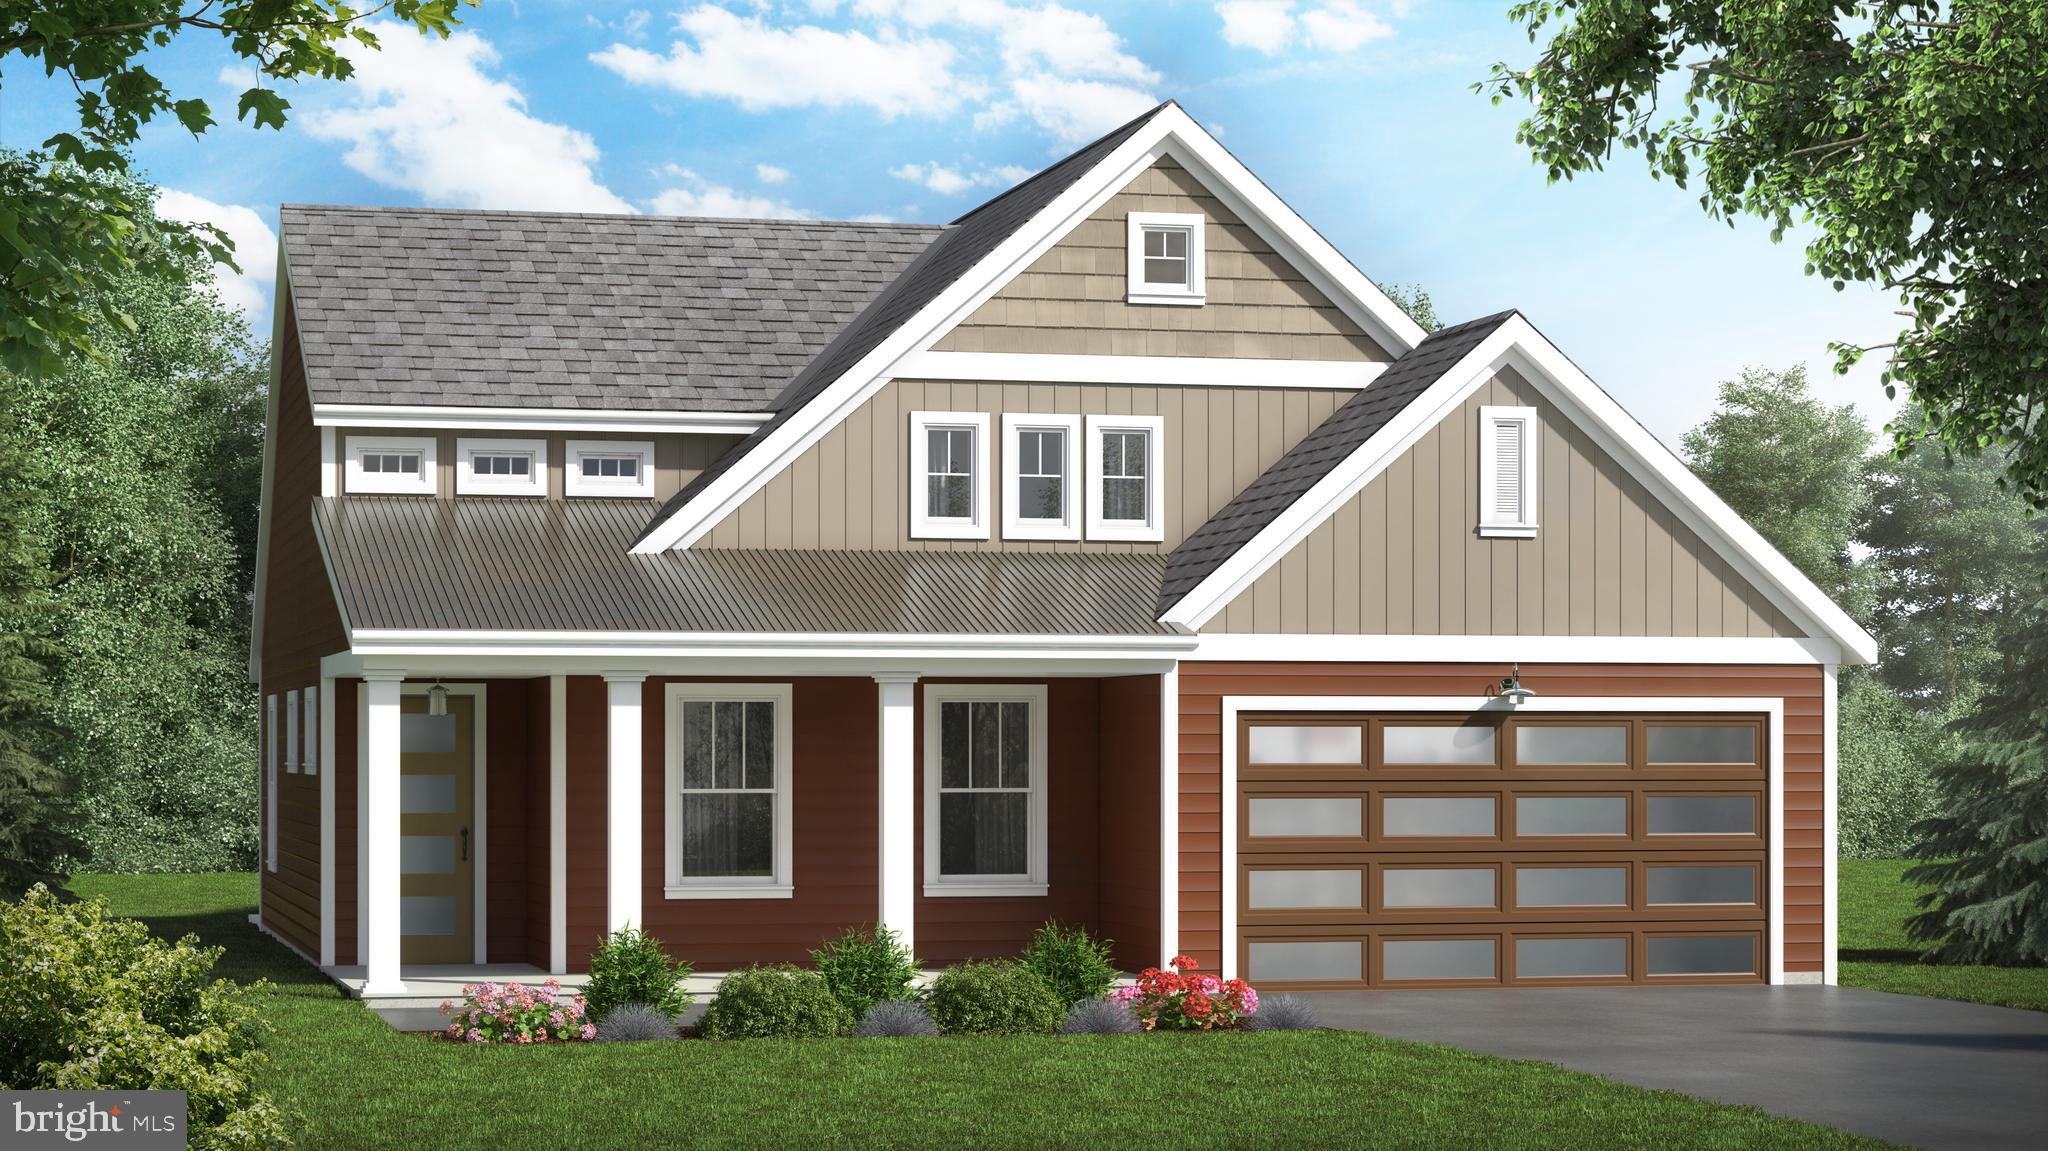 0 THE BAINBRIDGE - ALDEN HOMES AT MOUNTAIN MEADOWS, MYERSTOWN, PA 17067